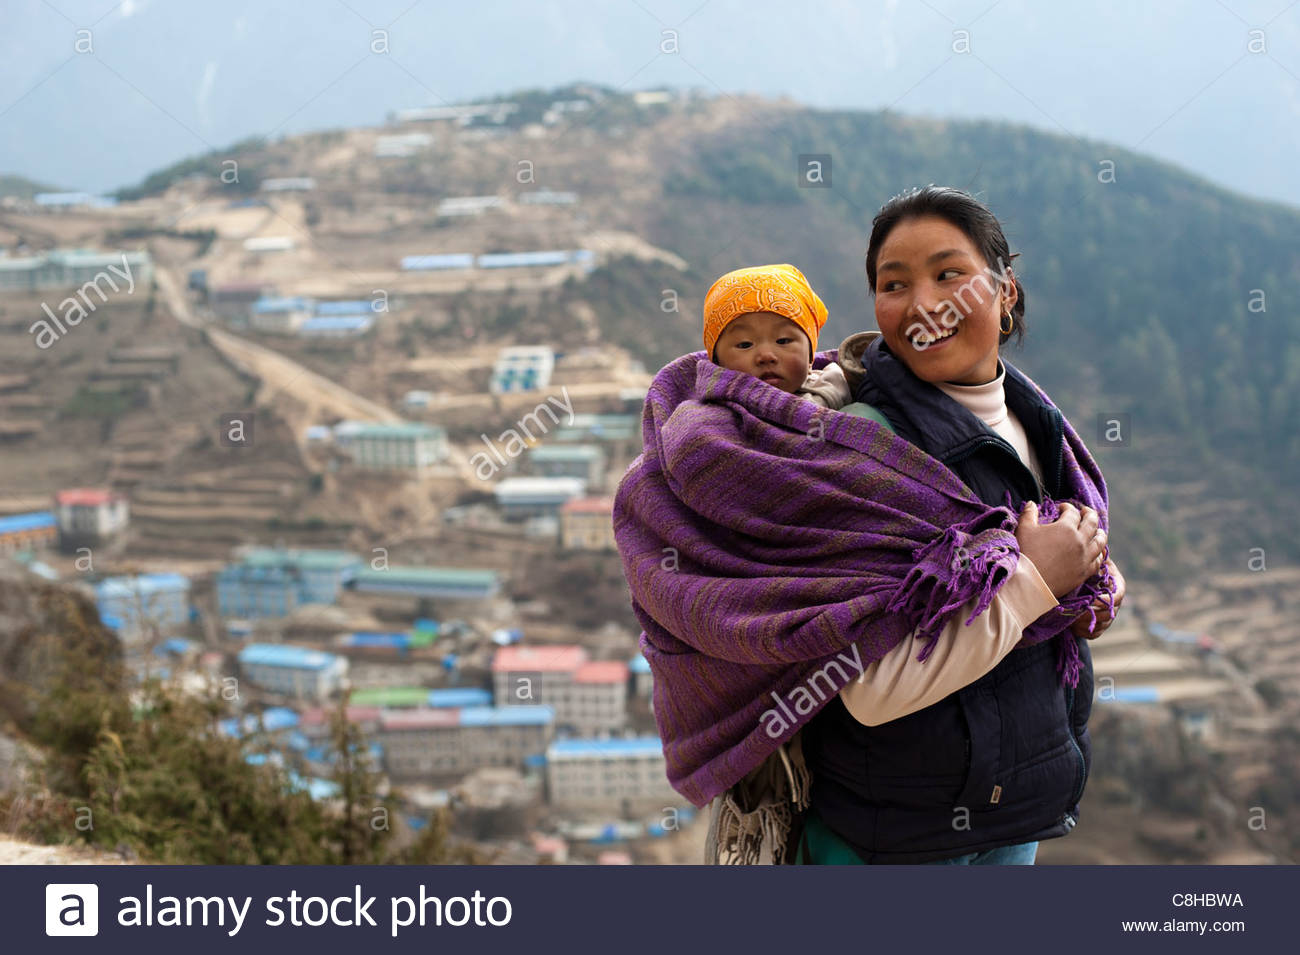 A woman carries her baby in a blanket with Namche visible behind. - Stock Image